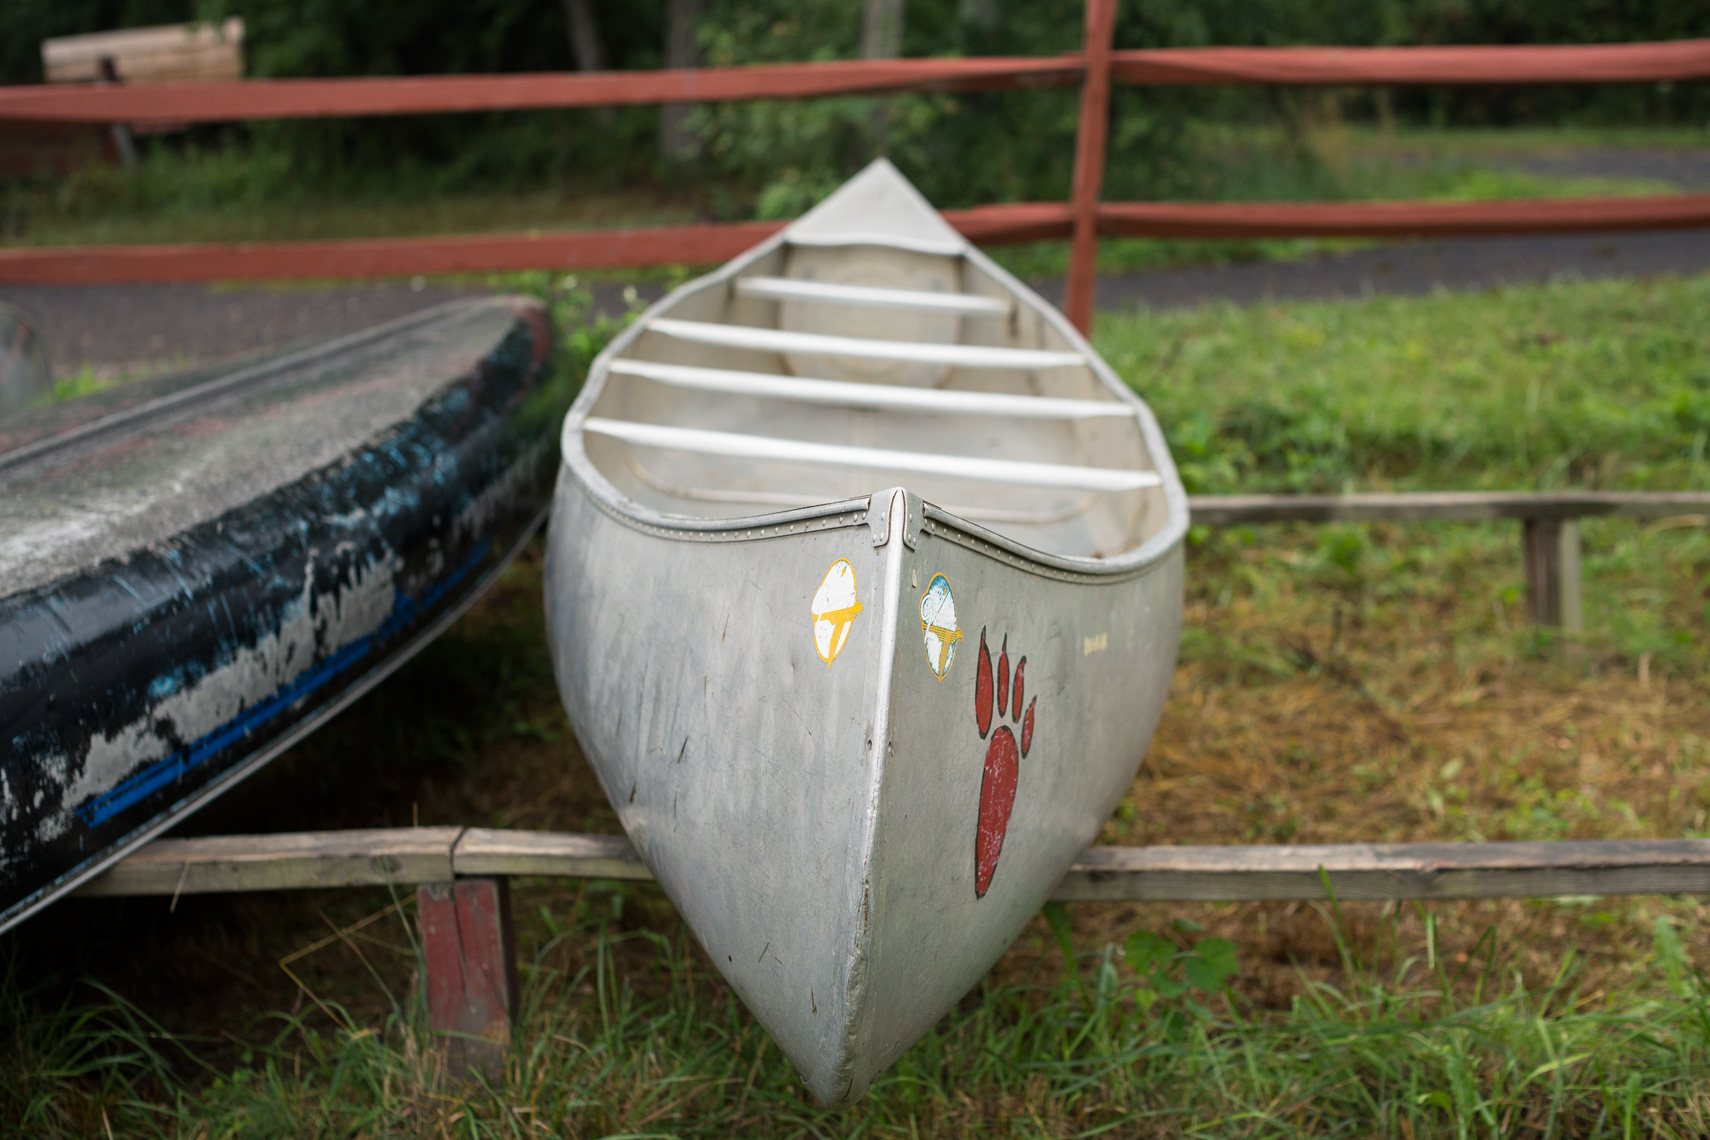 canoes in grass, washington dc photojournalism